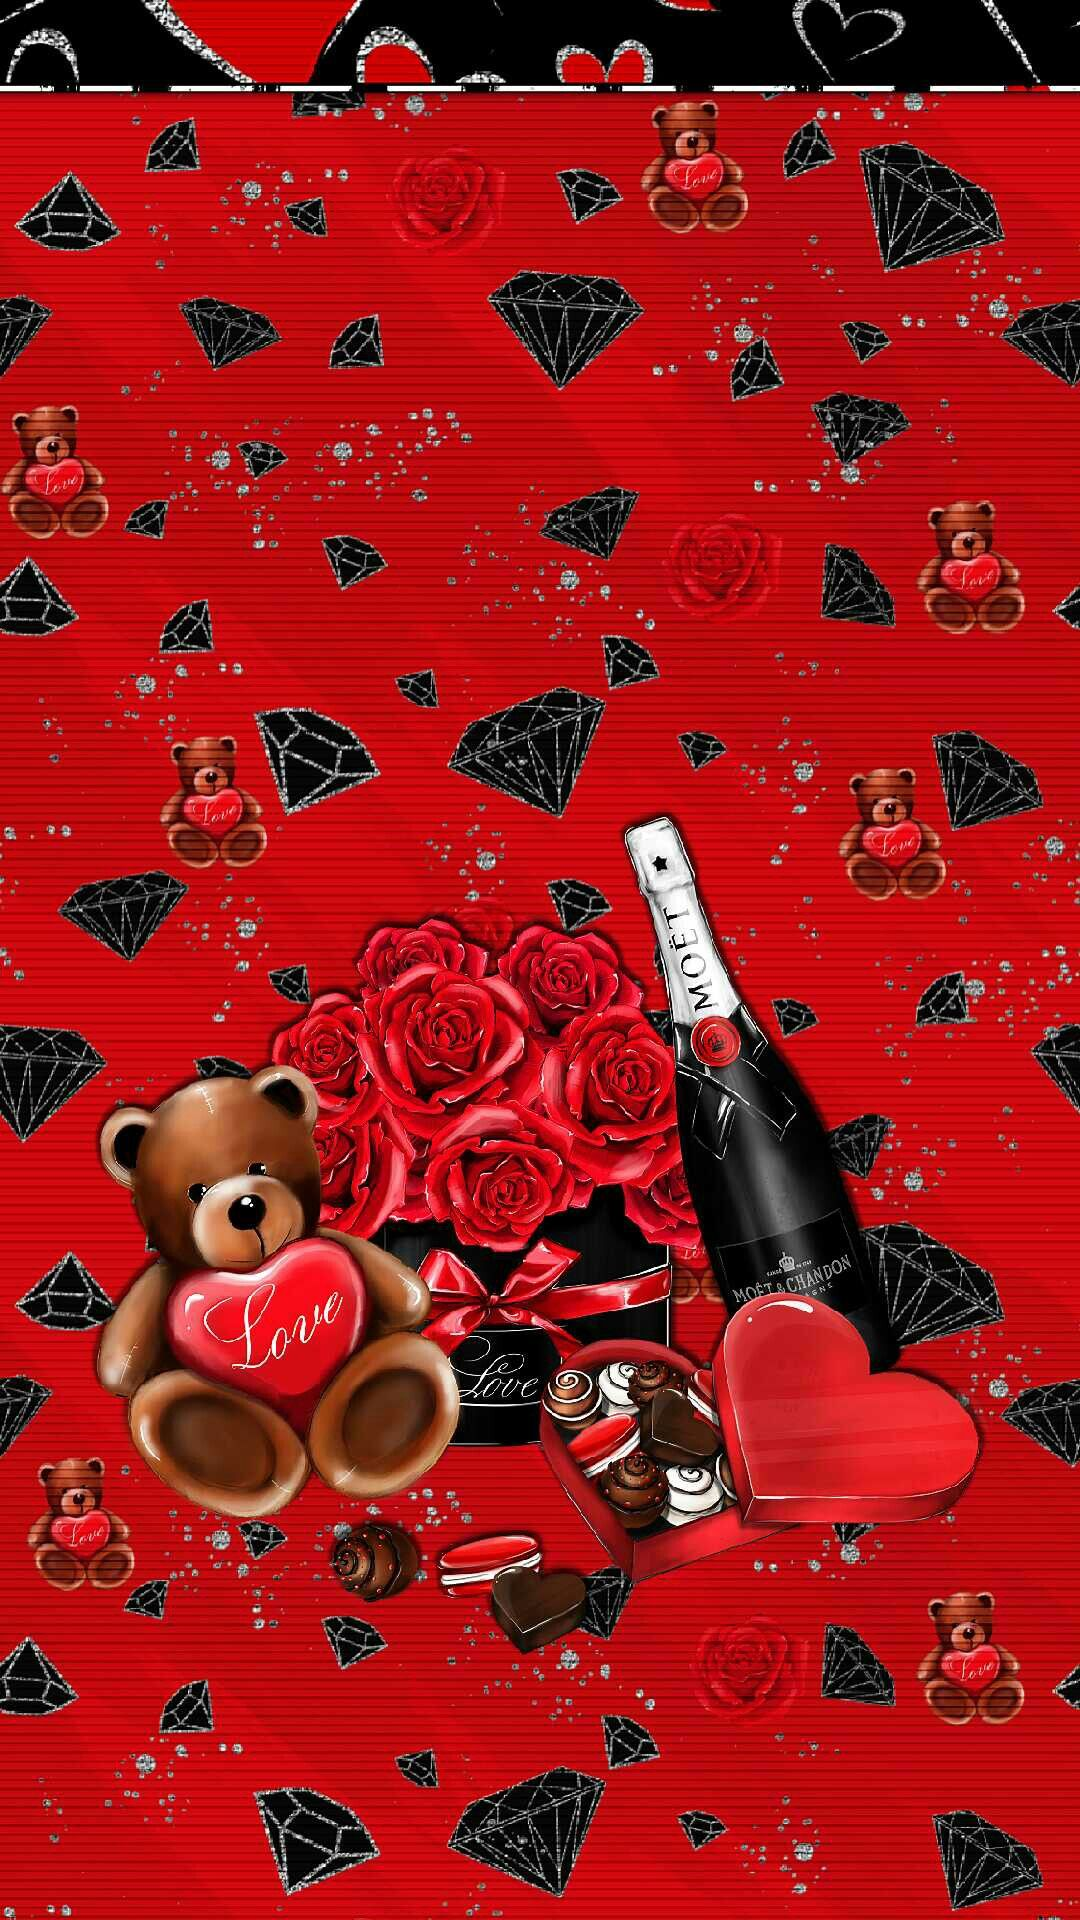 Pin By Angelmom4 On Cute Wallz In 2020 Valentines Wallpaper City Wallpaper Pretty Phone Wallpaper